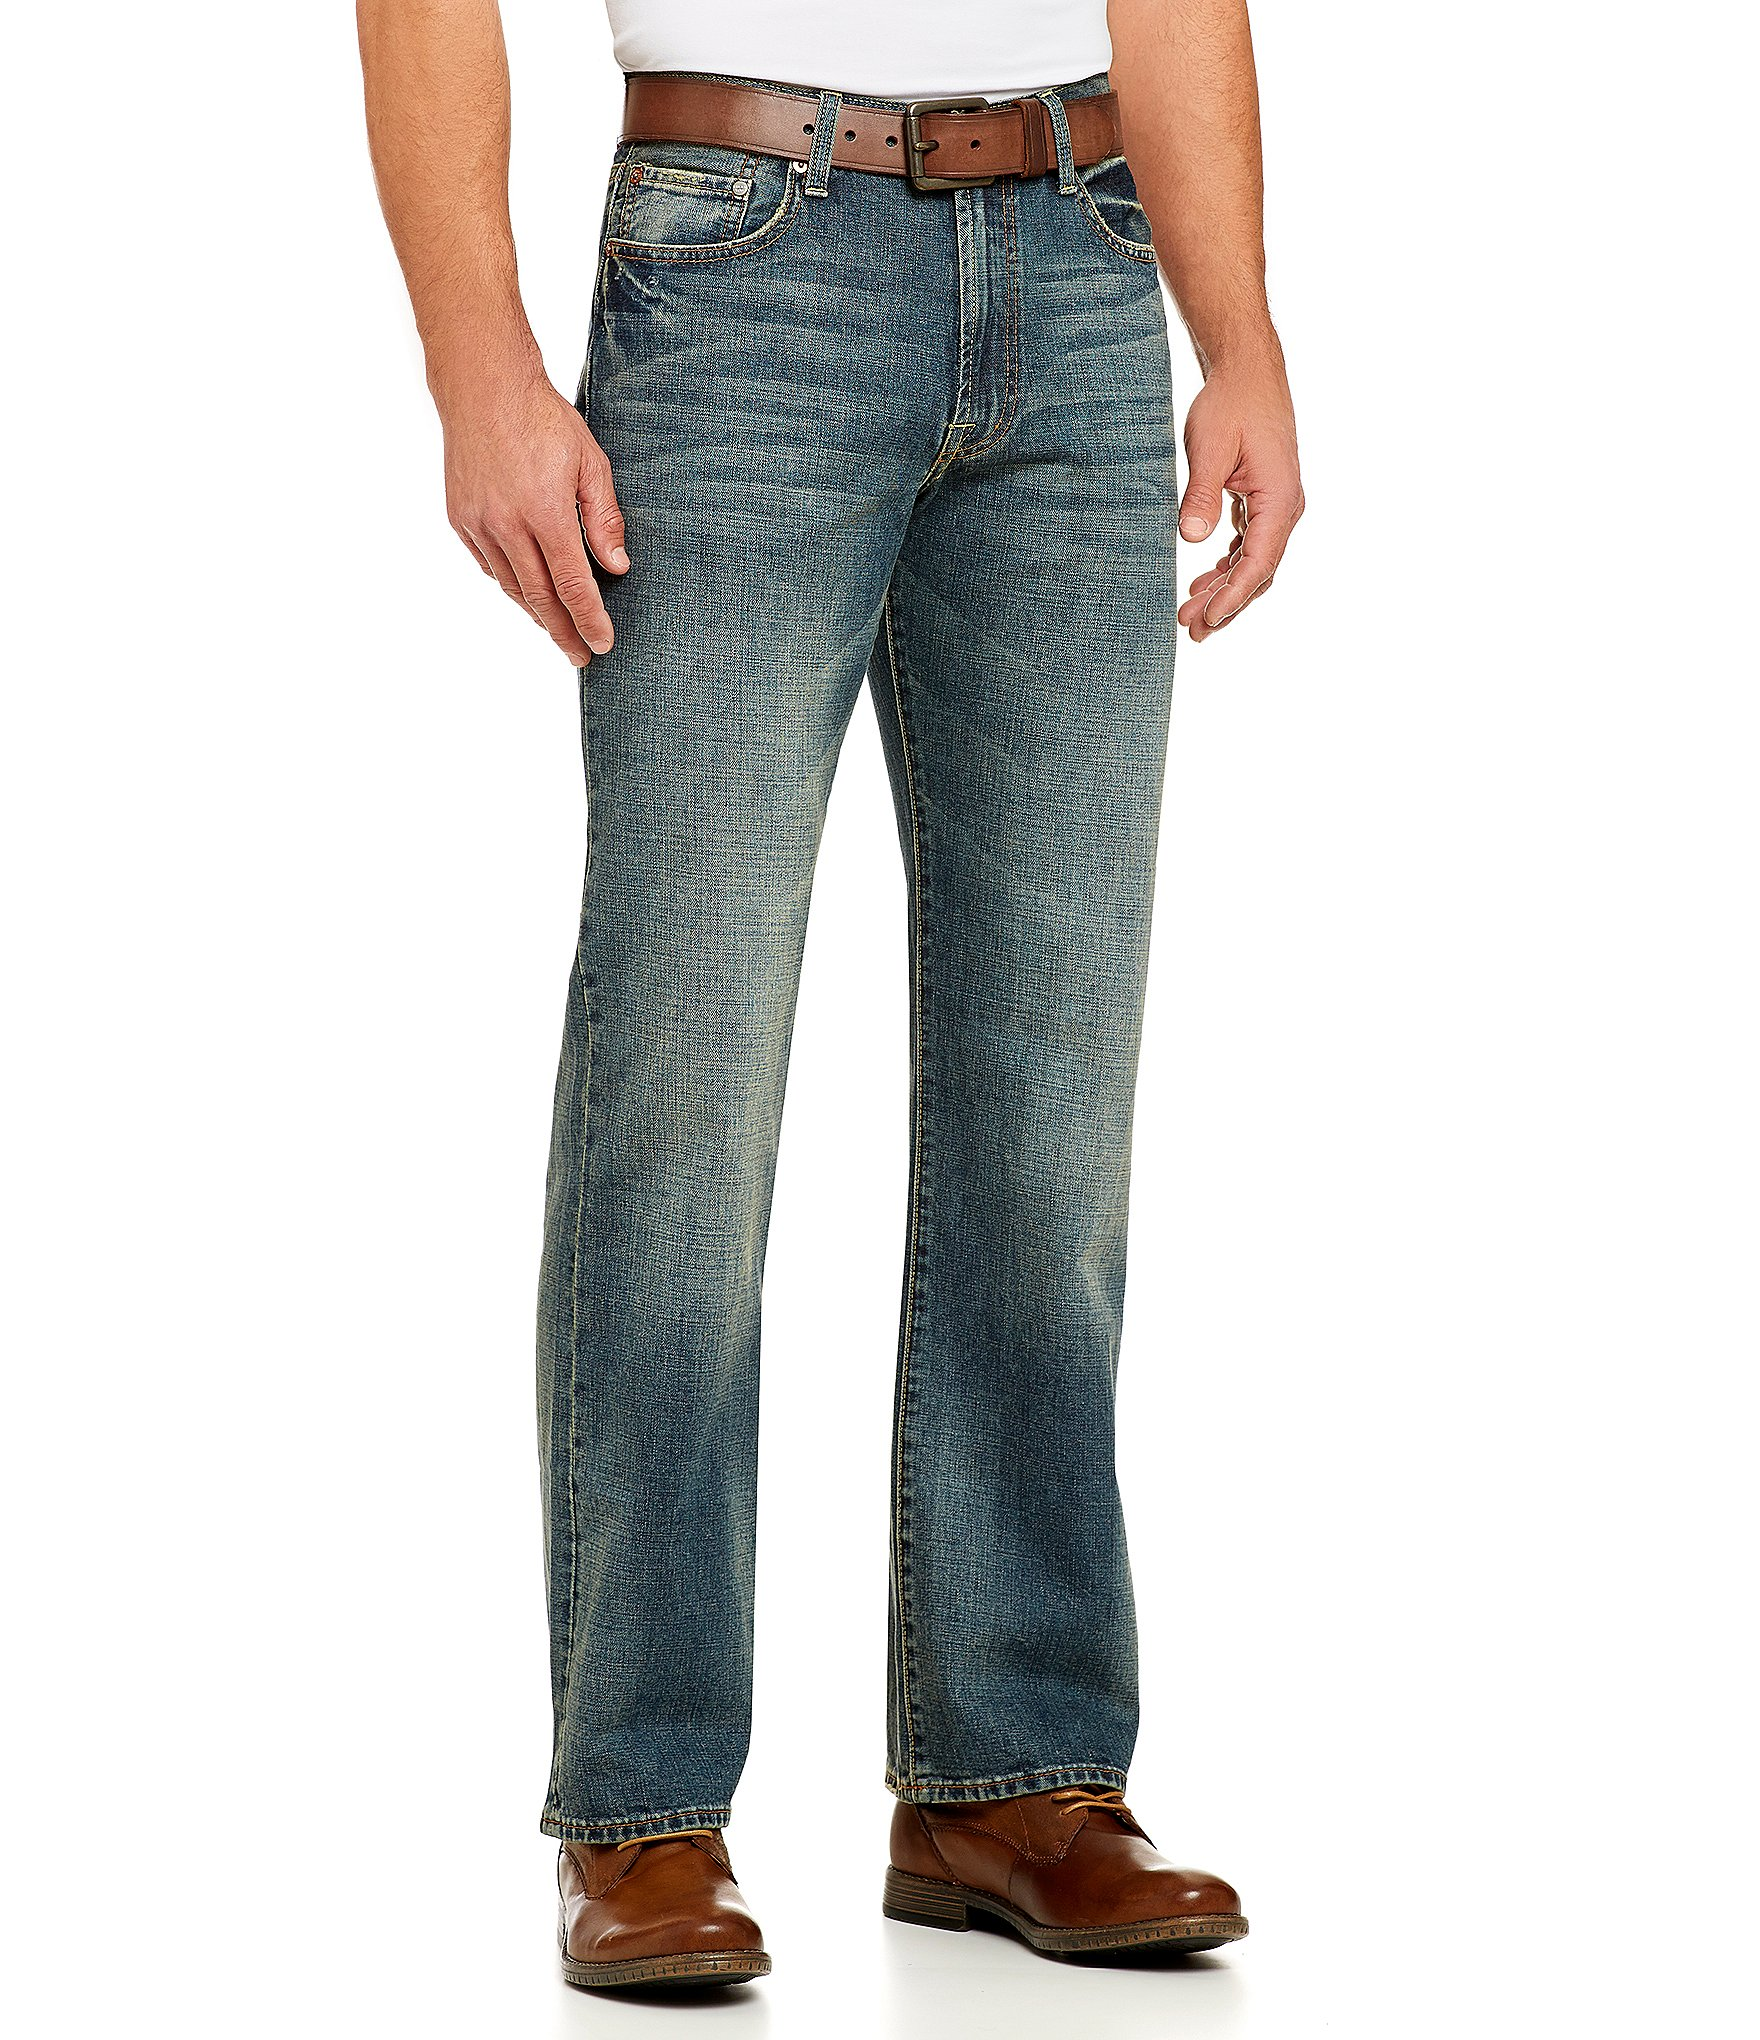 lucky brand 181 relaxed fit straight leg jeans dillards. Black Bedroom Furniture Sets. Home Design Ideas